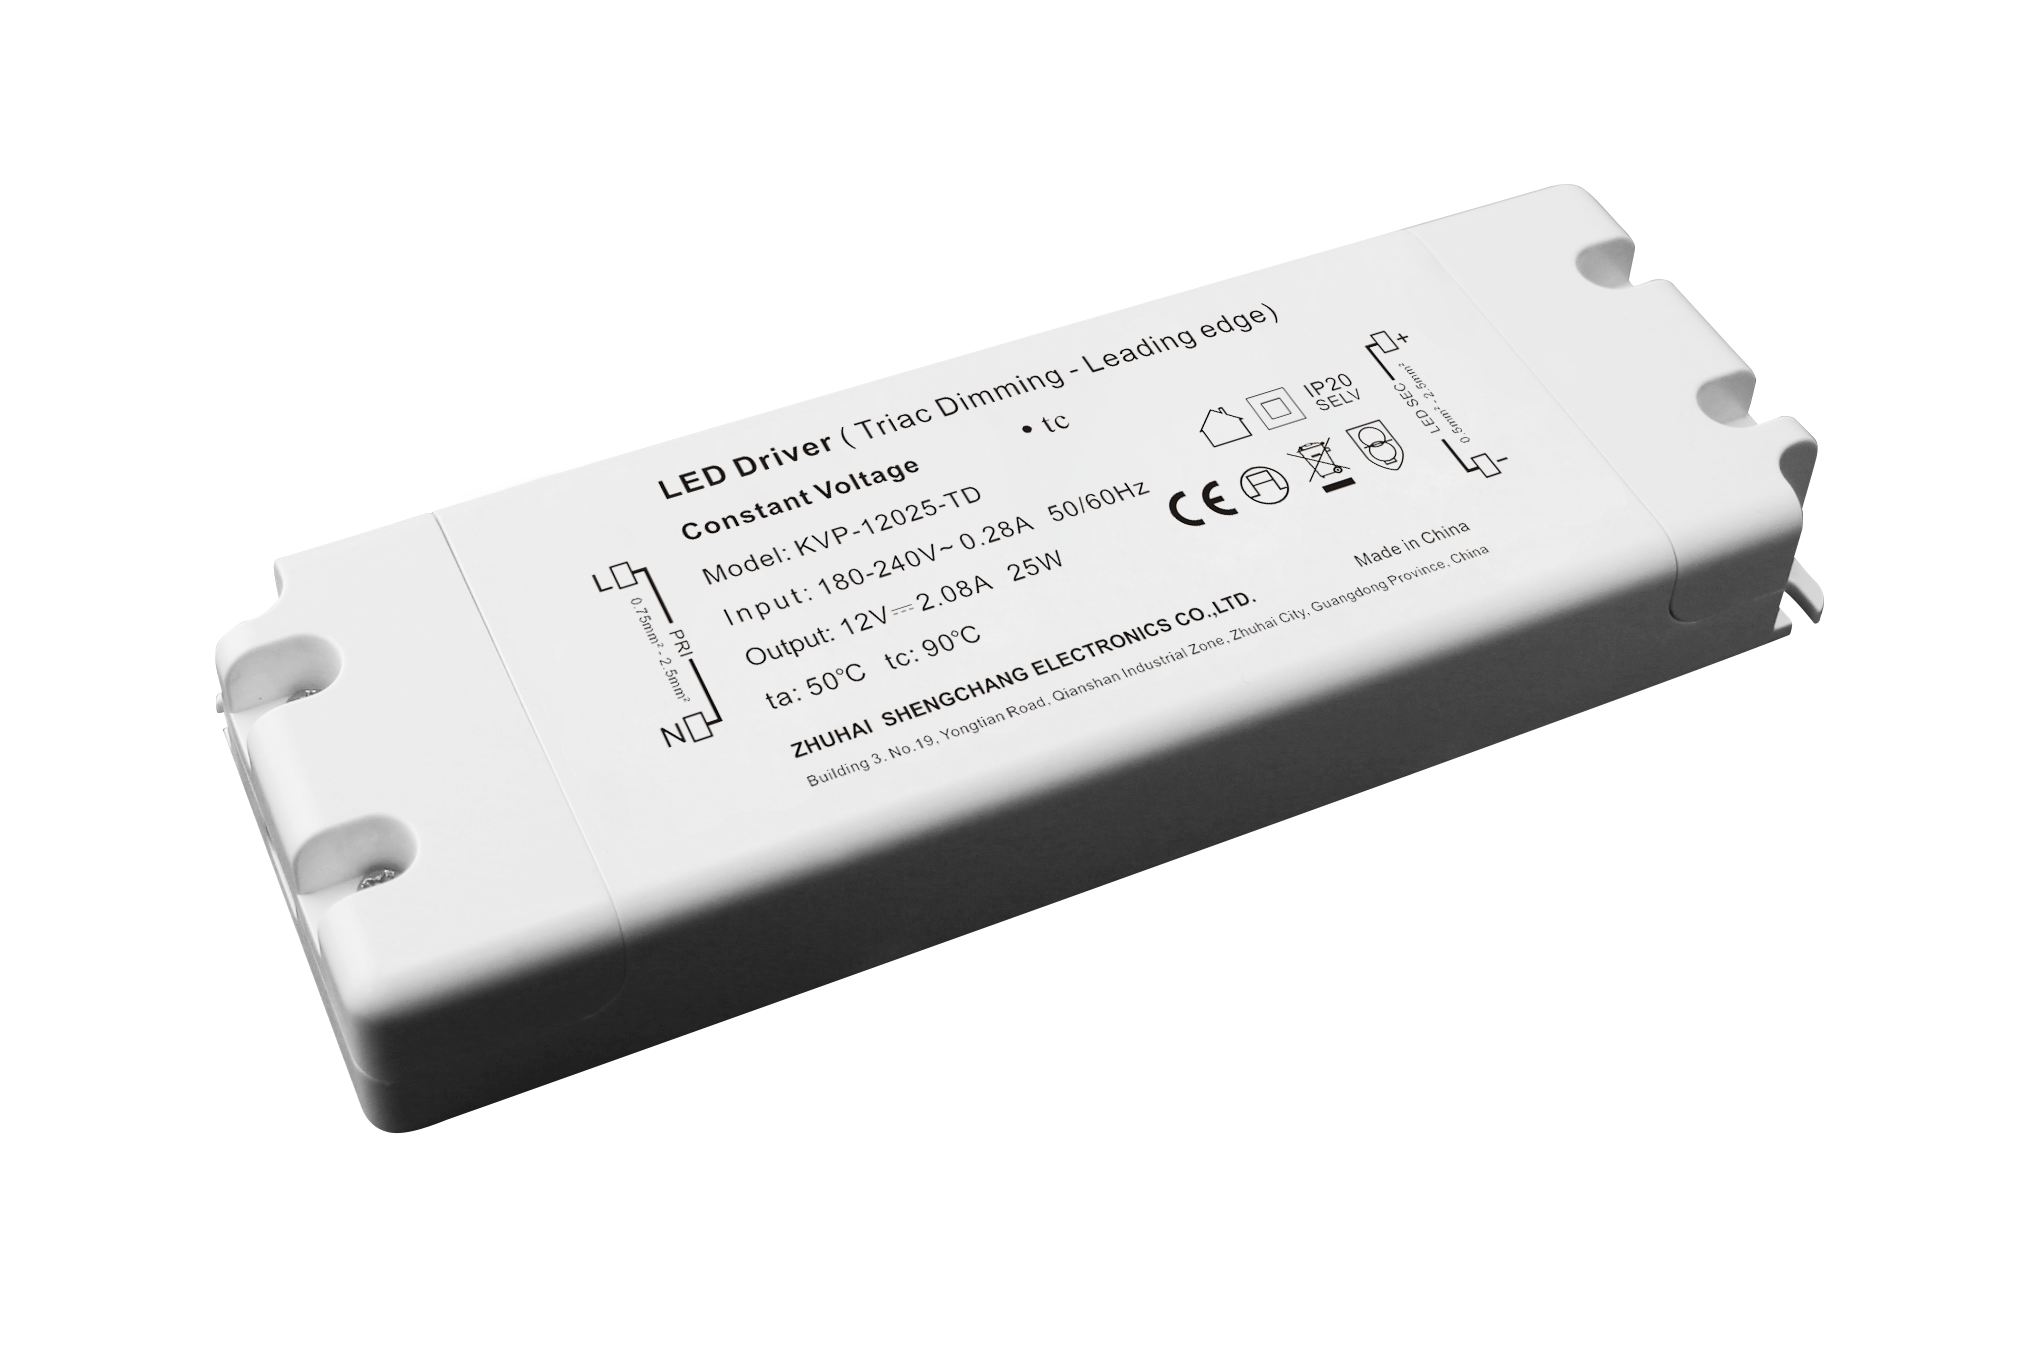 220VAC KVP series 25W constant voltage triac dimmable driver